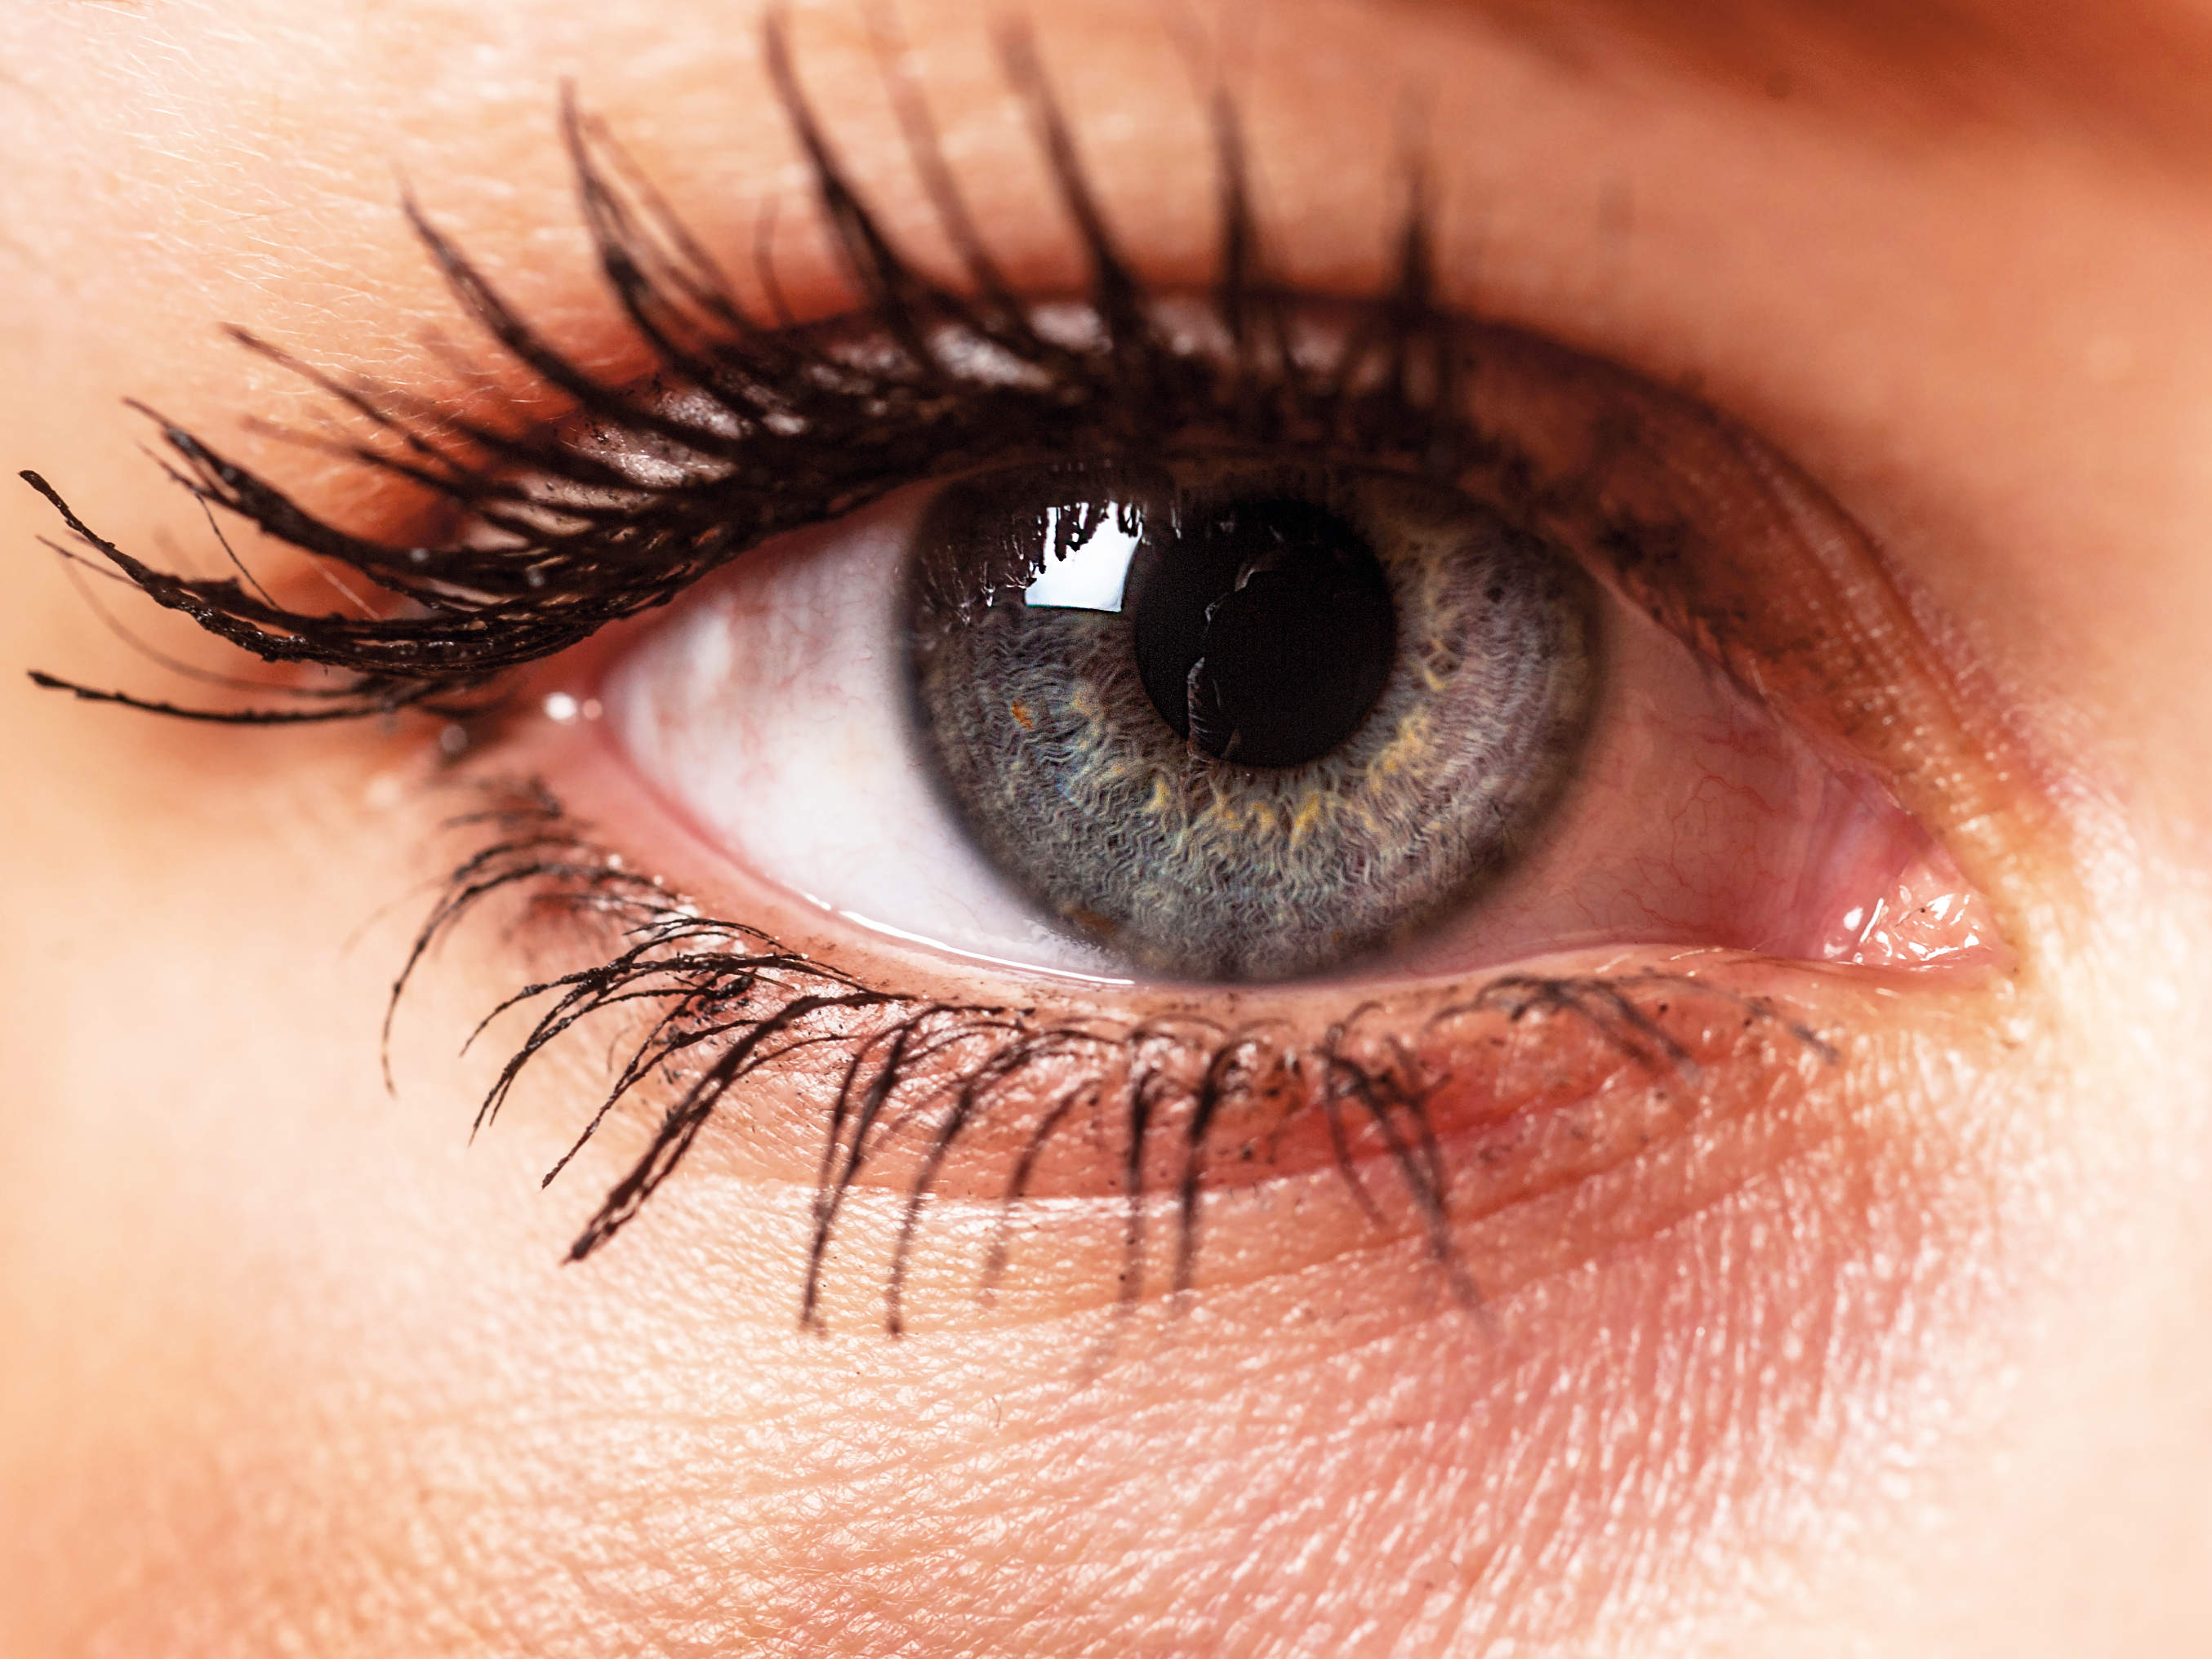 7-things-you-should-never-do-to-your-eyes-video